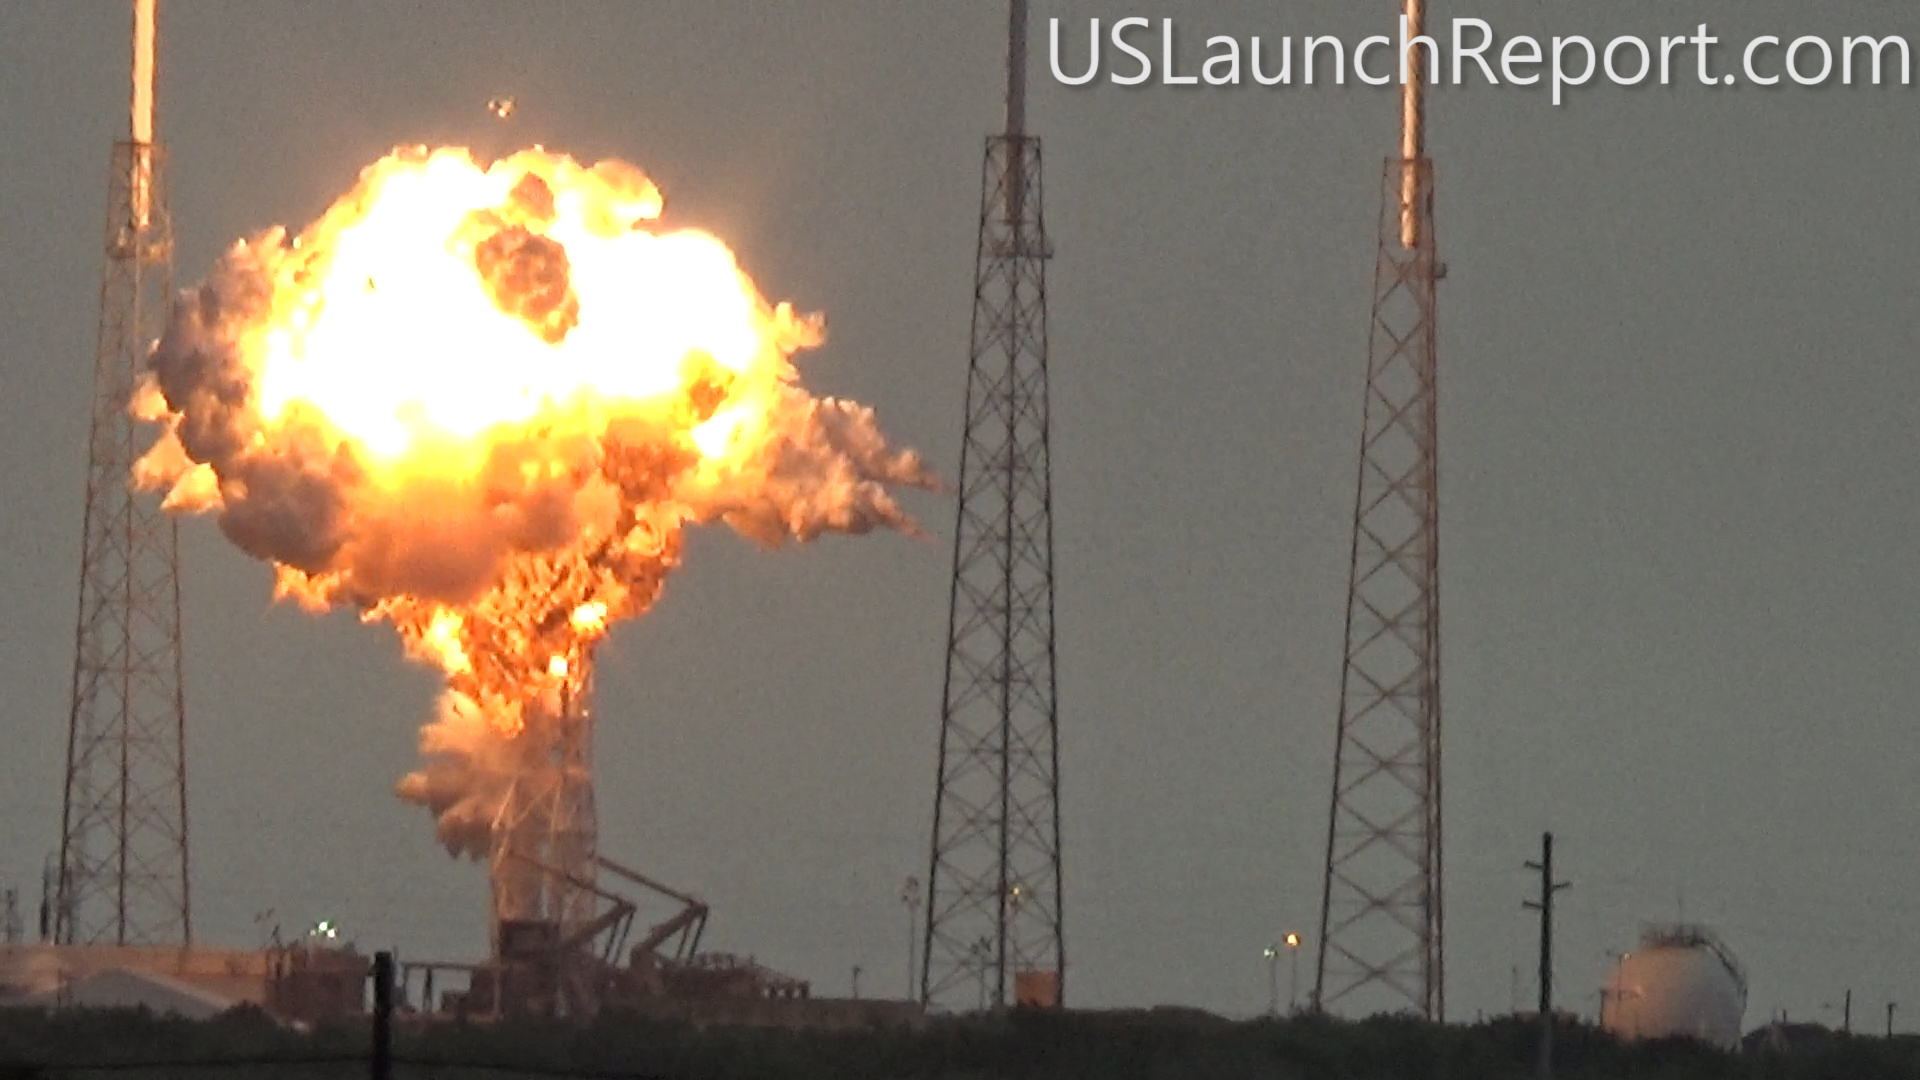 SpaceX Falcon 9 rocket moments after catastrophic explosion destroys the rocket and Amos-6 Israeli satellite payload at launch pad 40 at Cape Canaveral Air Force Station, FL, on Sept. 1, 2016. A static hot fire test was planned ahead of scheduled launch on Sept. 3, 2016. Credit: USLaunchReport